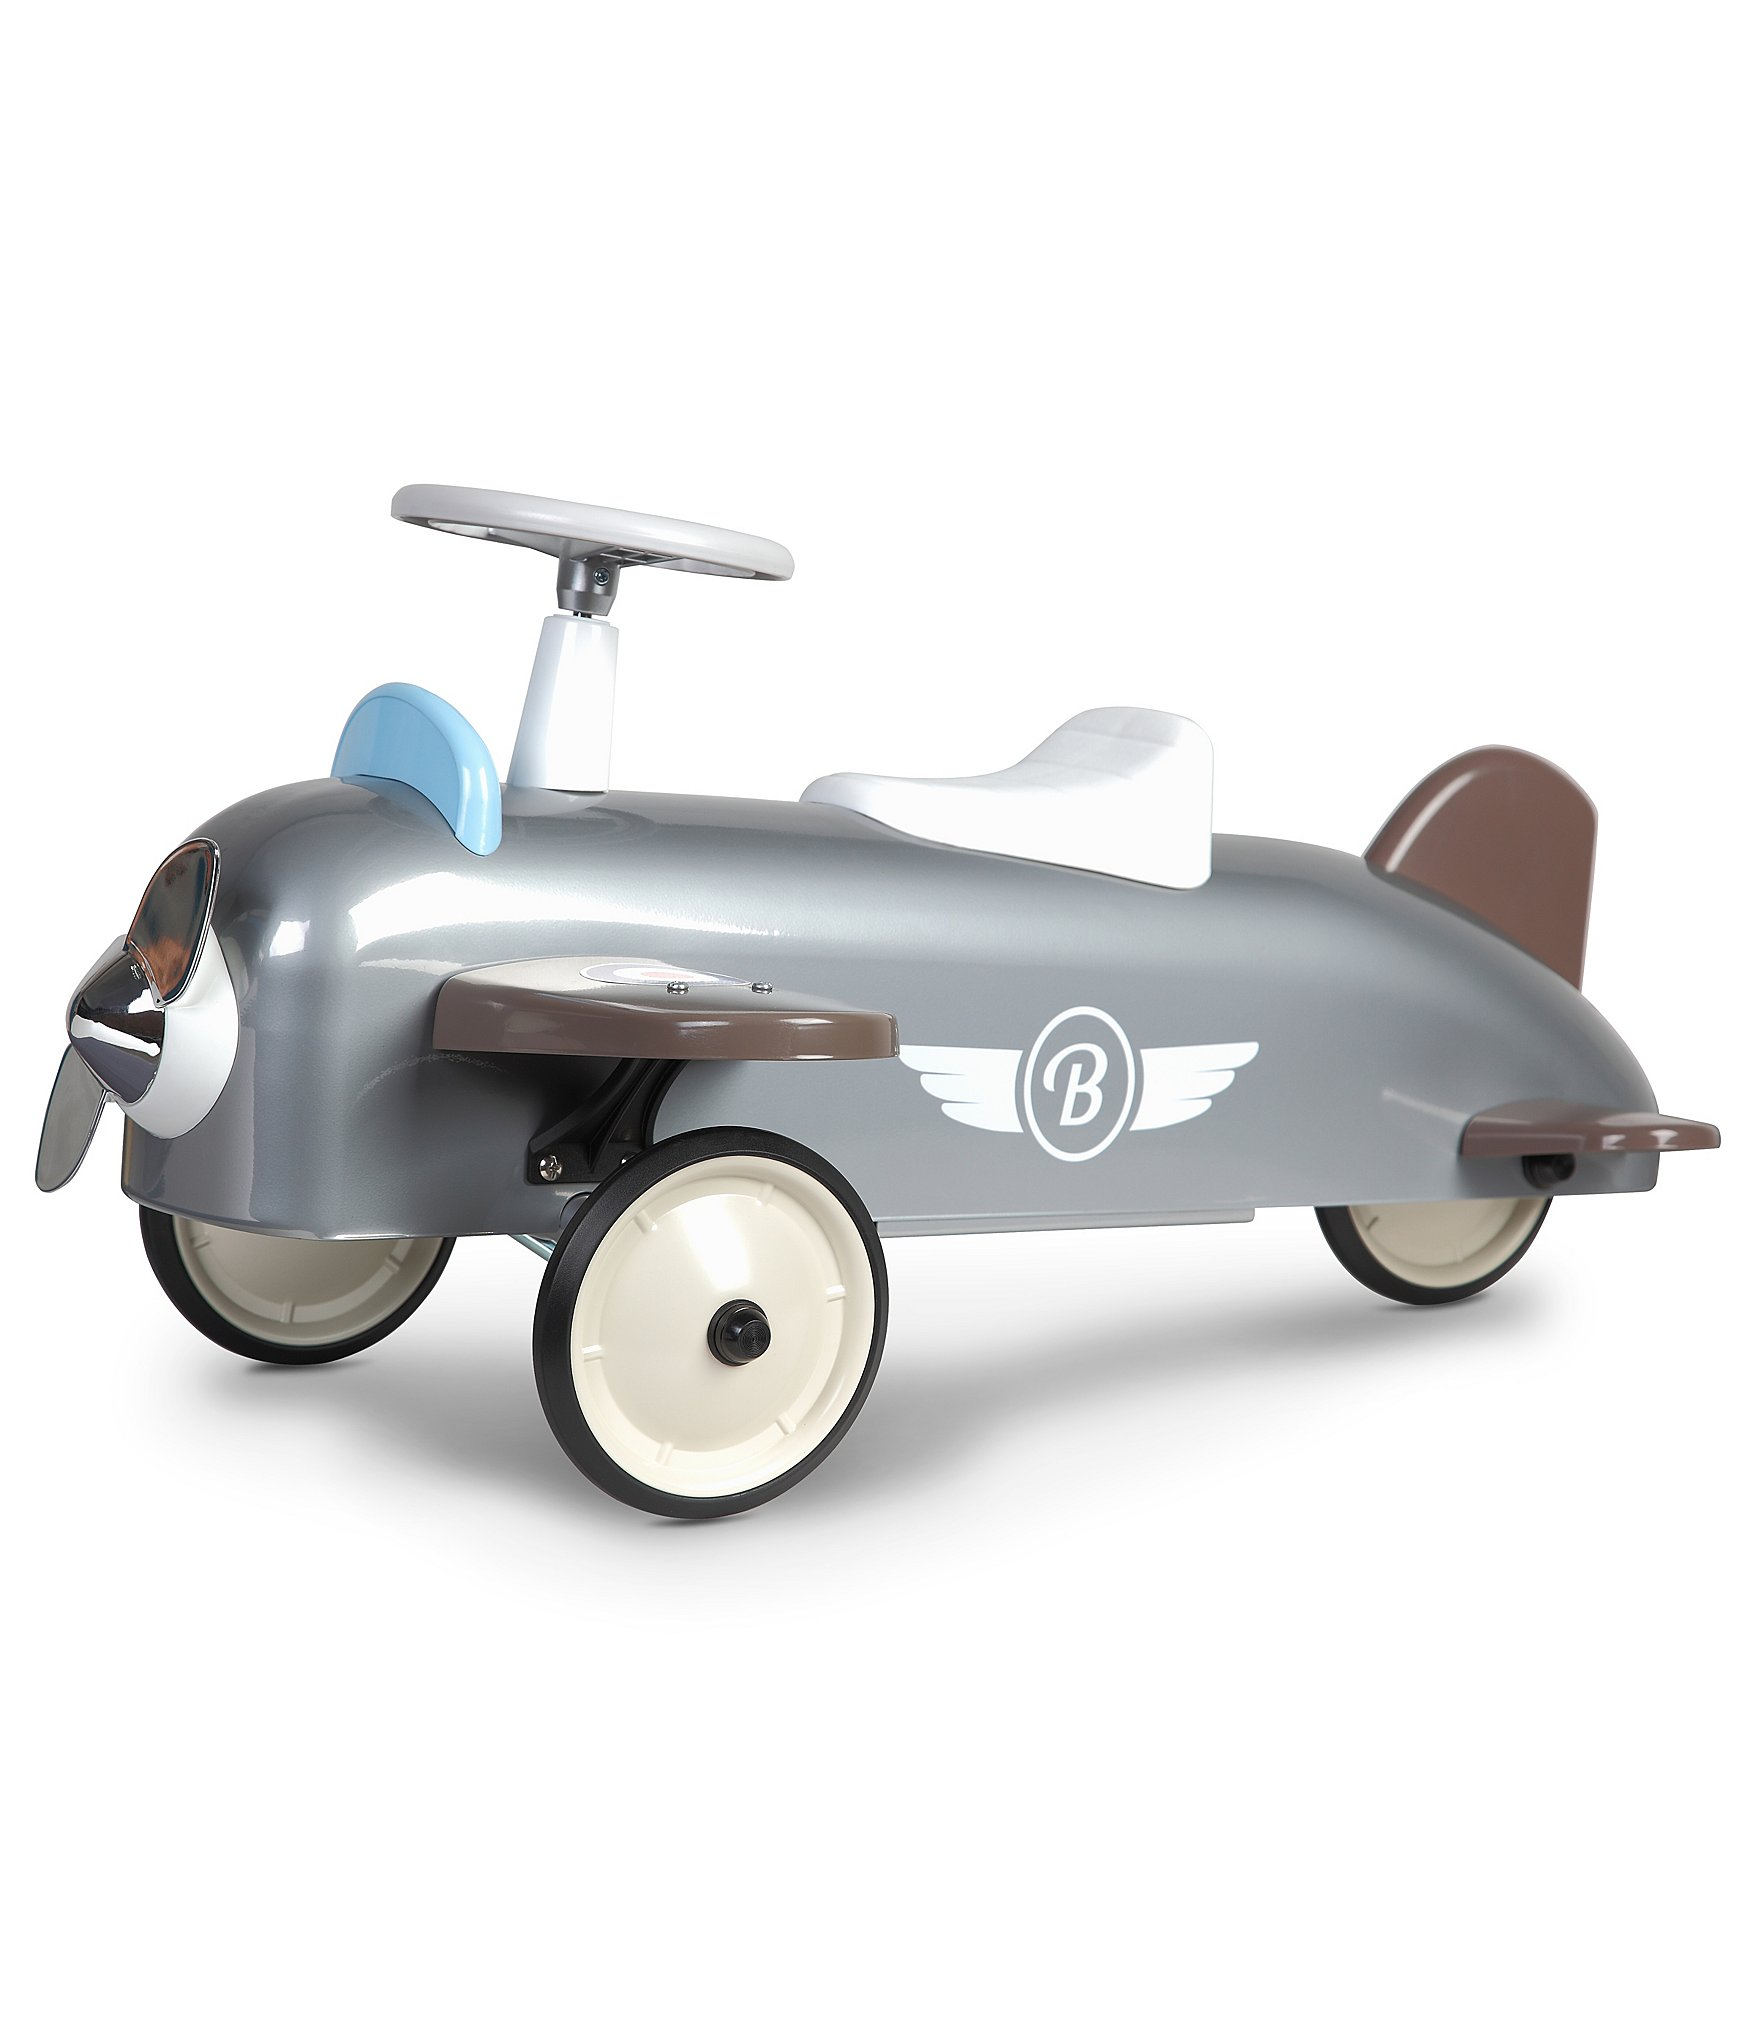 Baghera Speedster Plane | The Coolest First Birthday Gifts